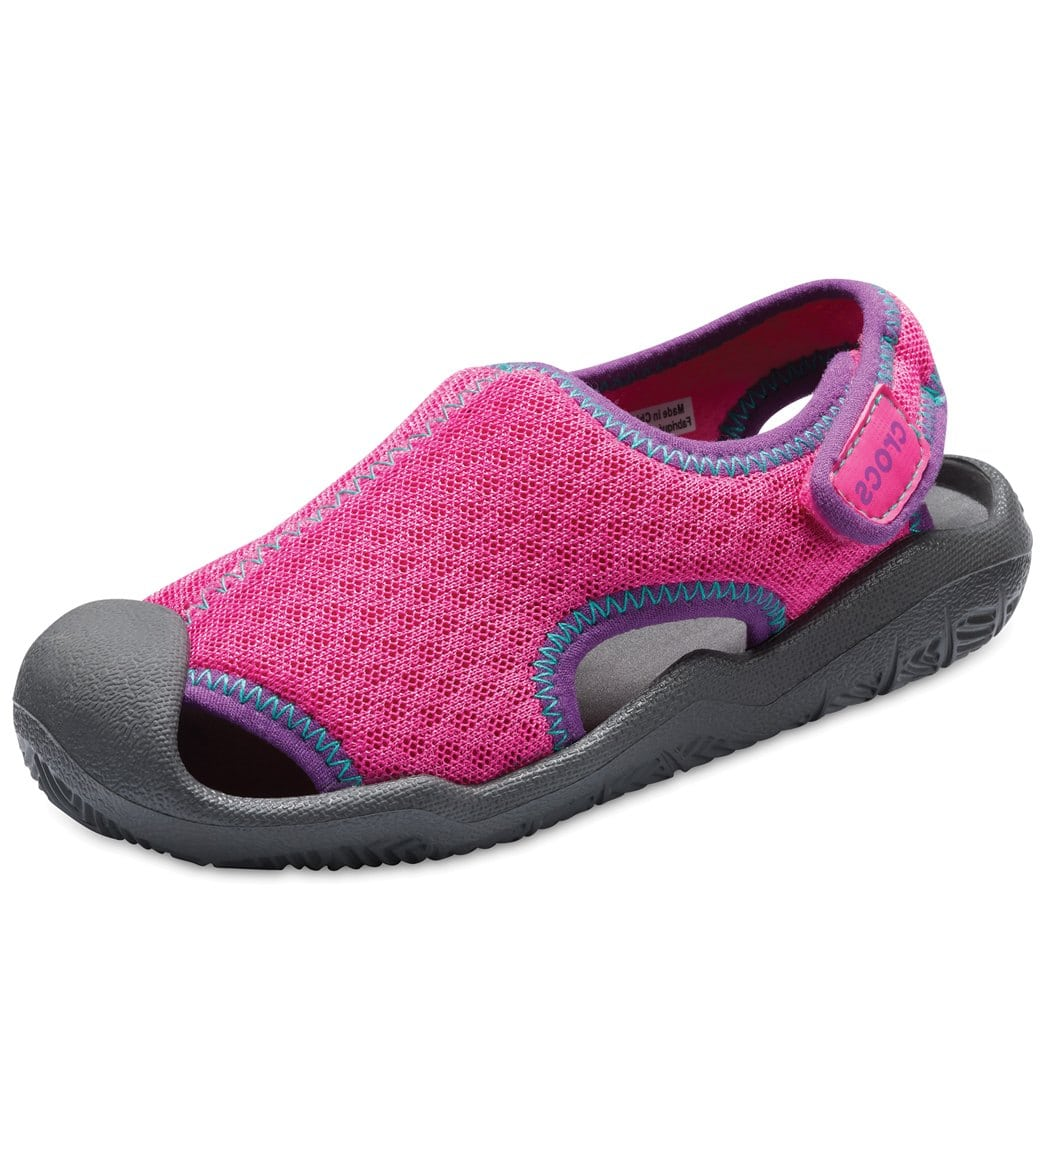 dad0993bac090 Crocs Kid s Swiftwater Sandal at SwimOutlet.com